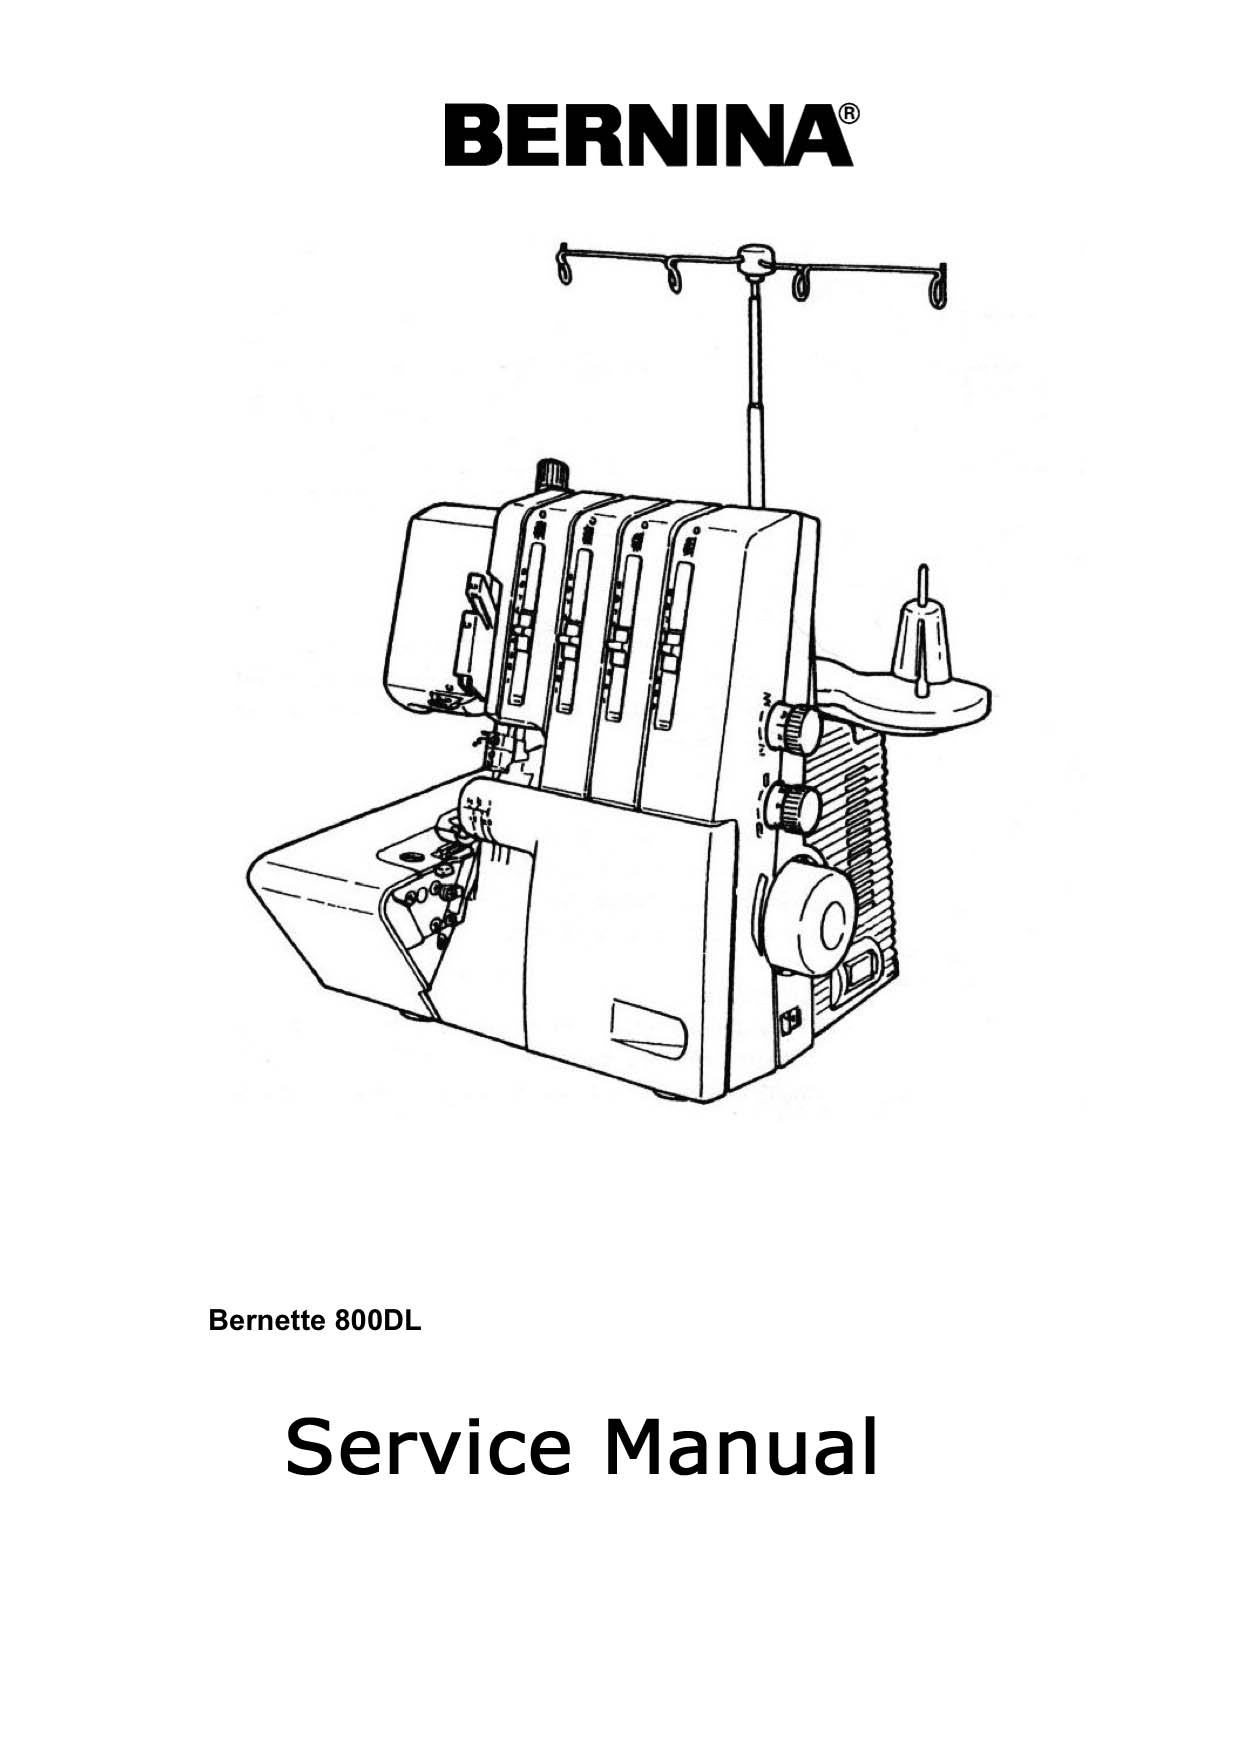 Service Manual For Bernina 800D, 800DL Serger Sewing Machine